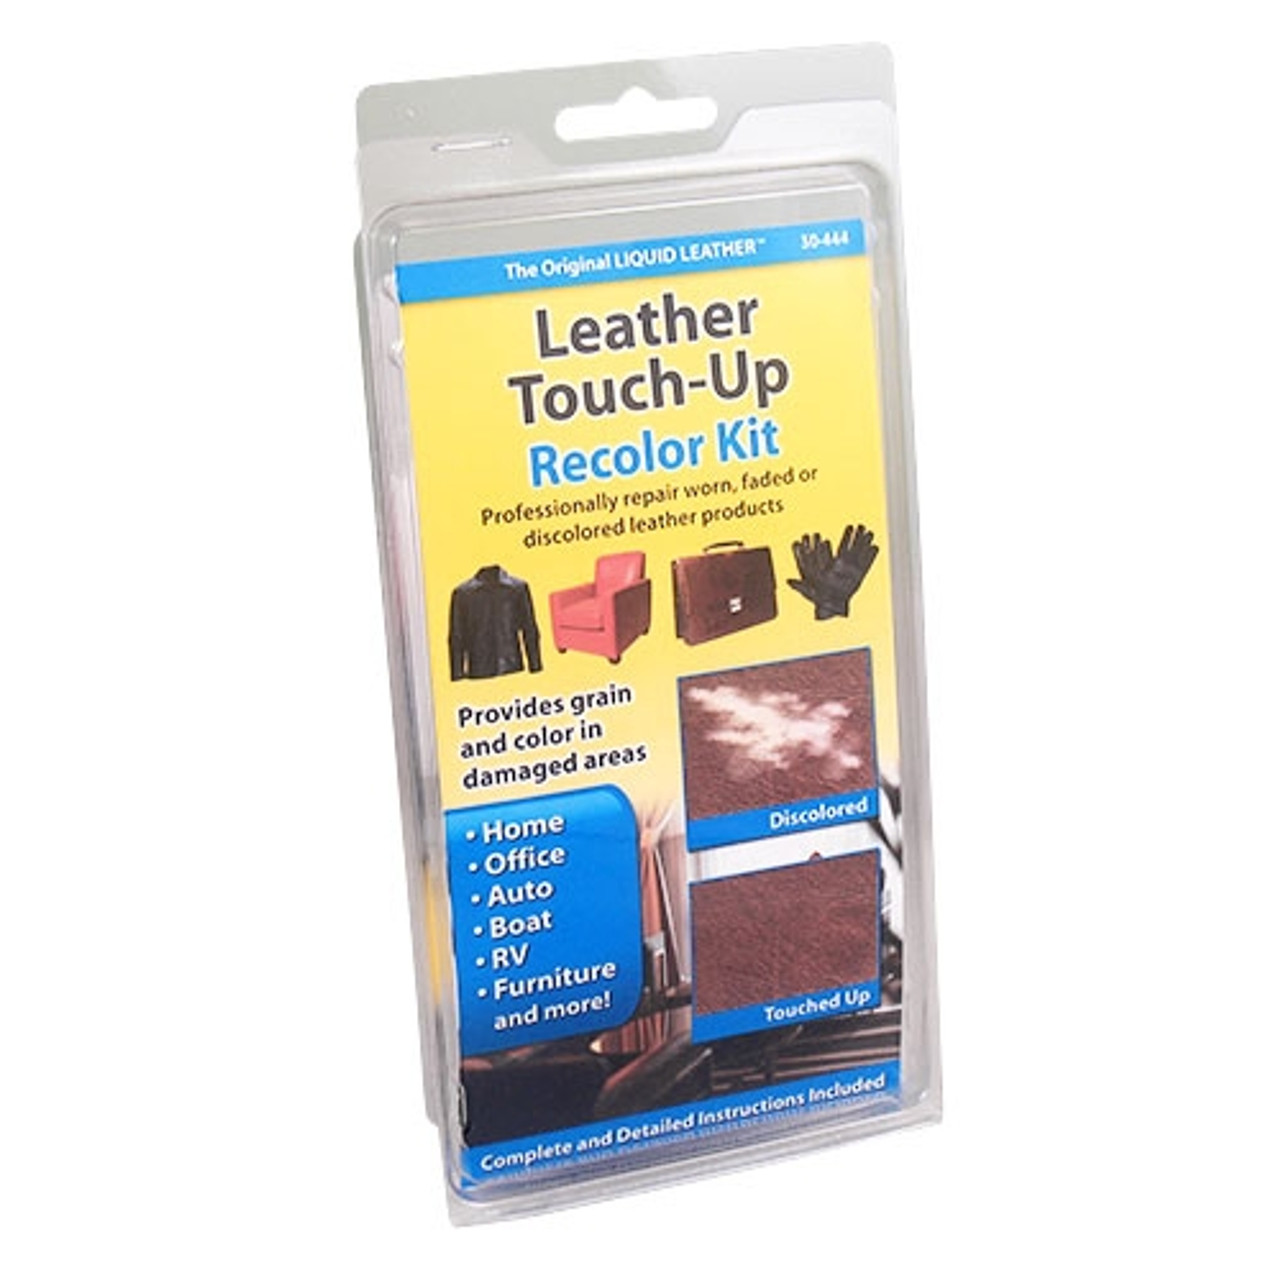 Outstanding Liquid Leather Touch Up Recolor Kit Machost Co Dining Chair Design Ideas Machostcouk